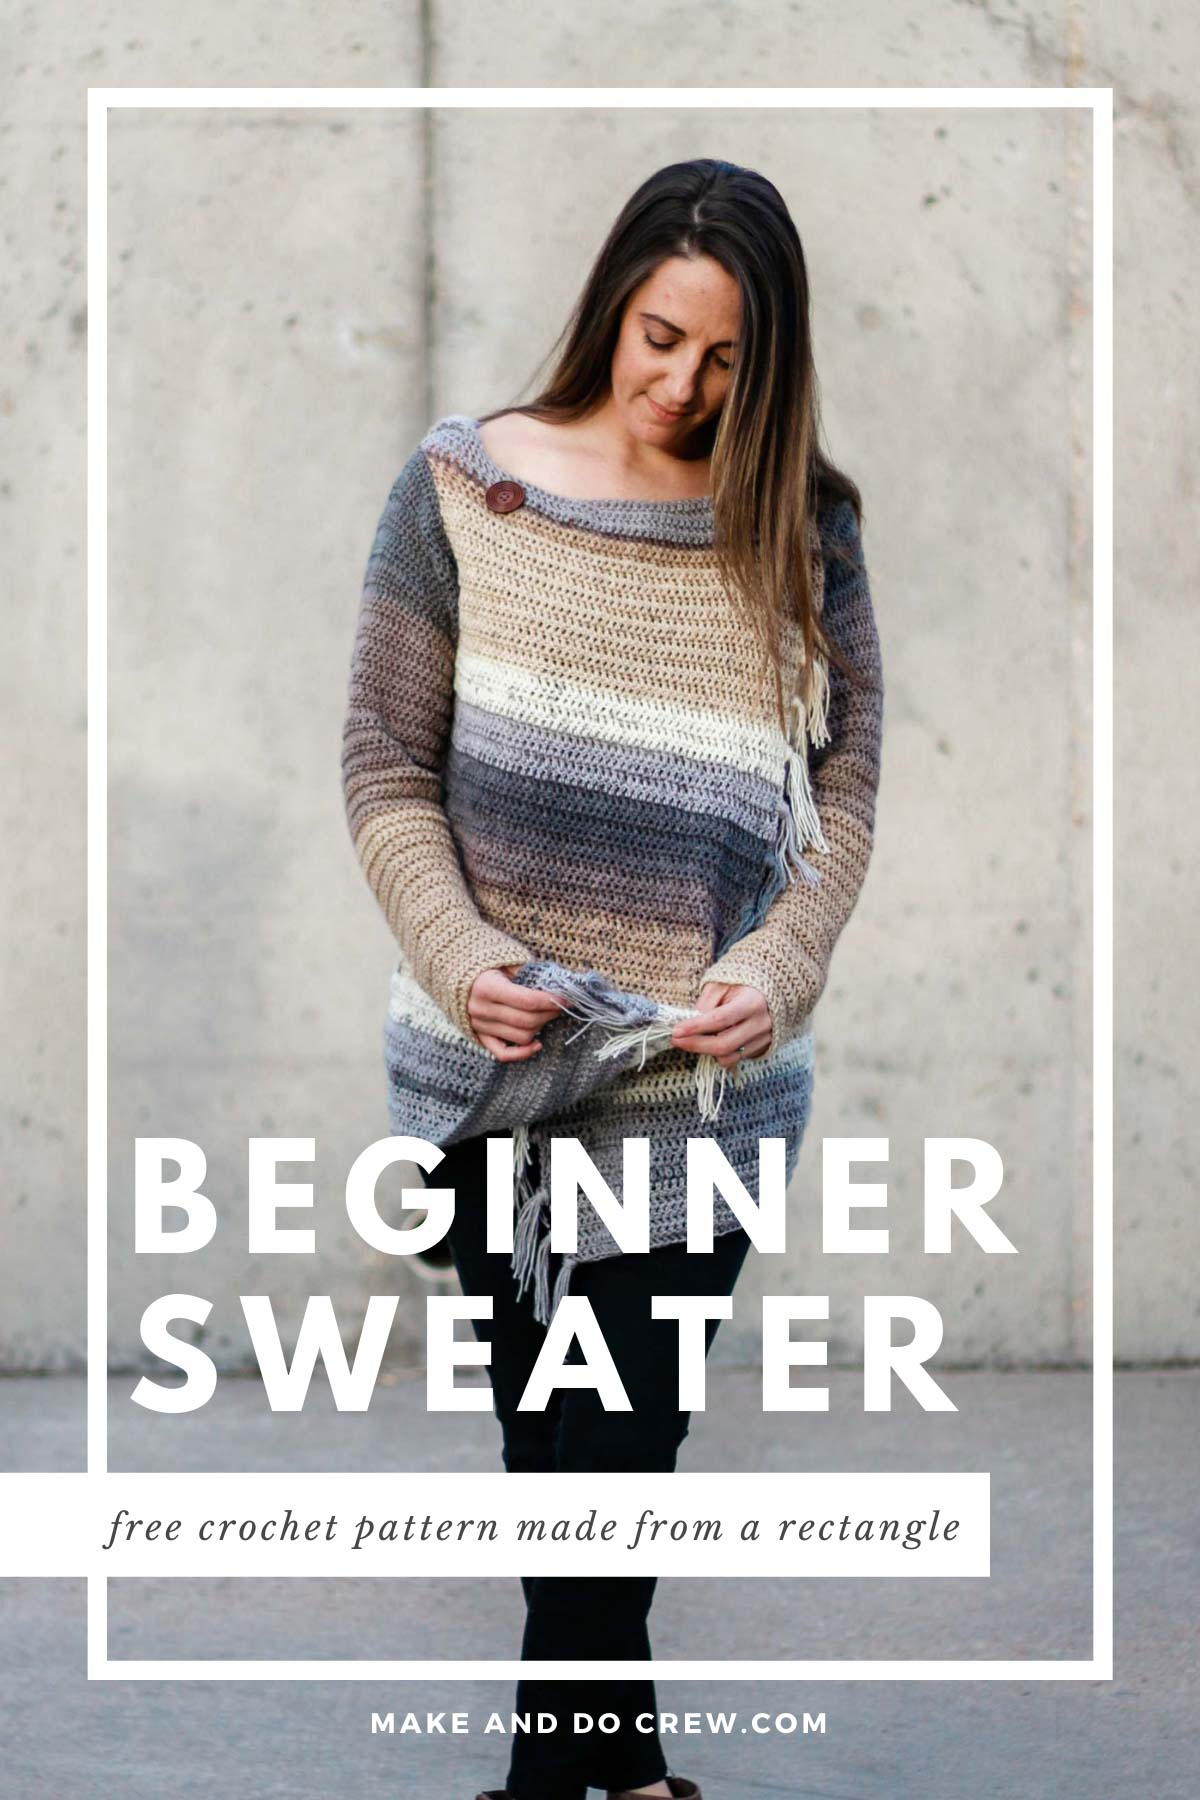 This flowy, stylish crochet sweater pattern for beginners is made from a simple rectangle! Free pattern and tutorial using yarn cakes.